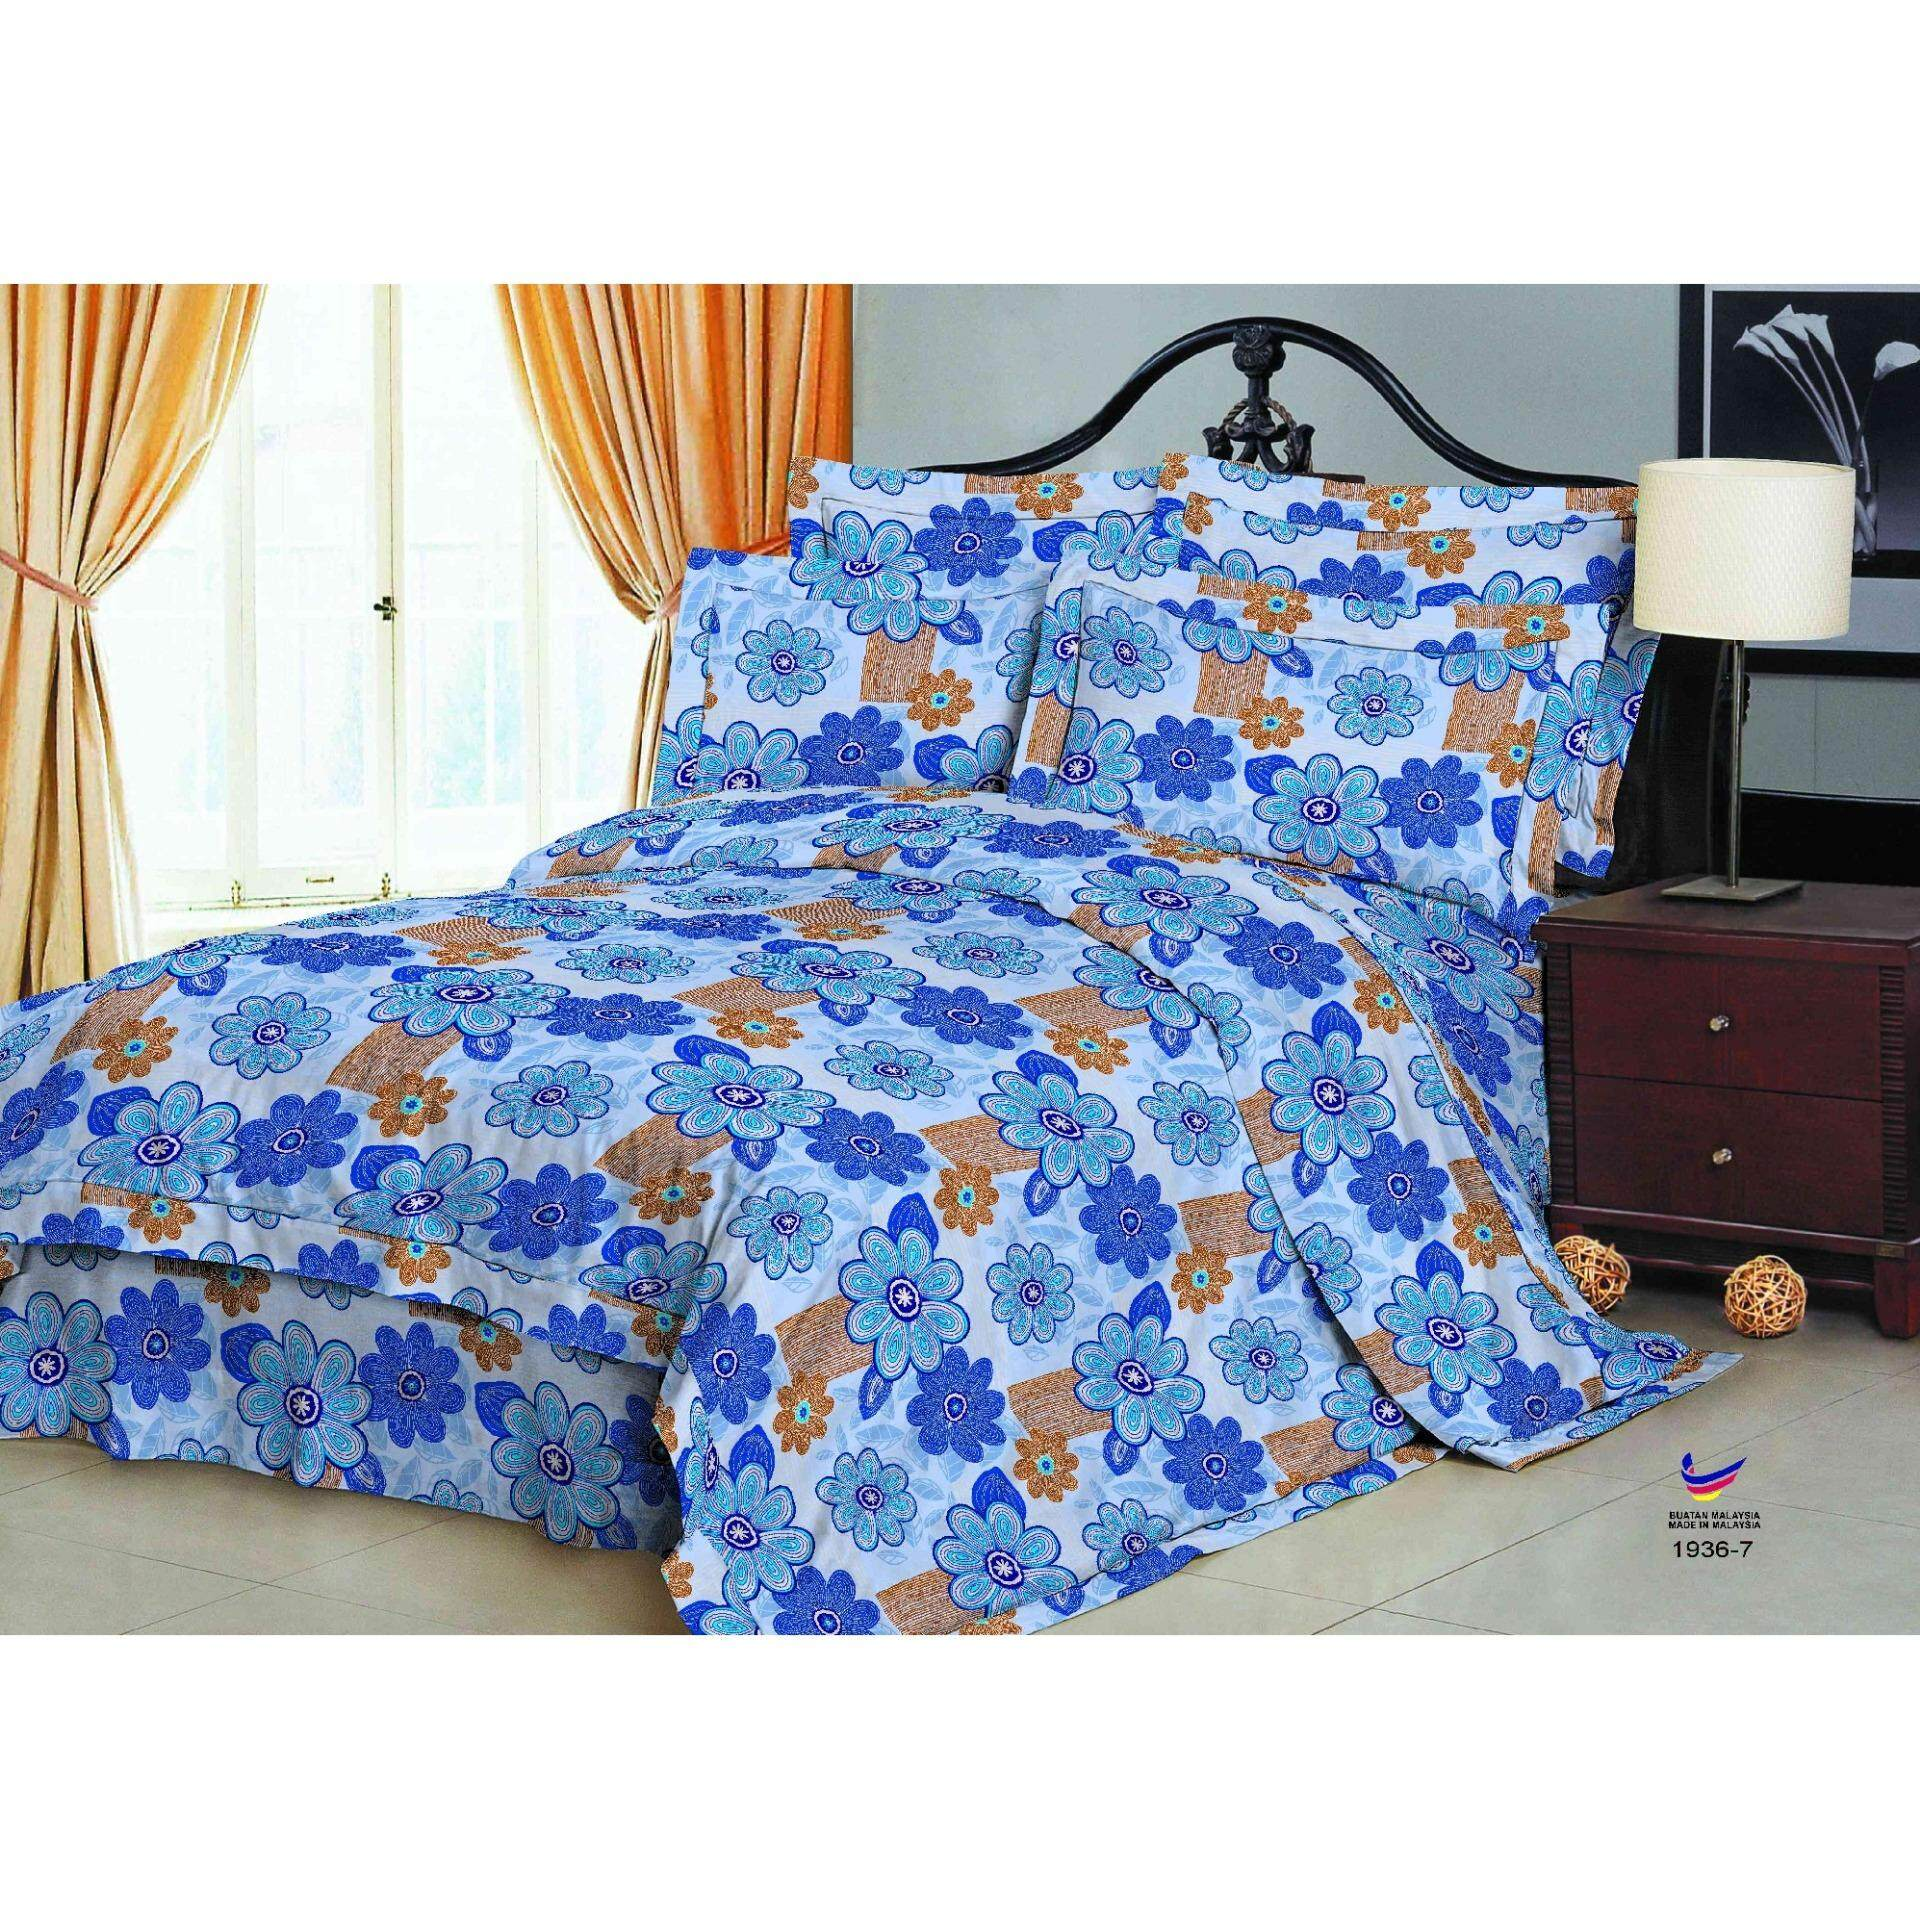 Home Bedding Sets Buy Home Bedding Sets at Best Price in Malaysia